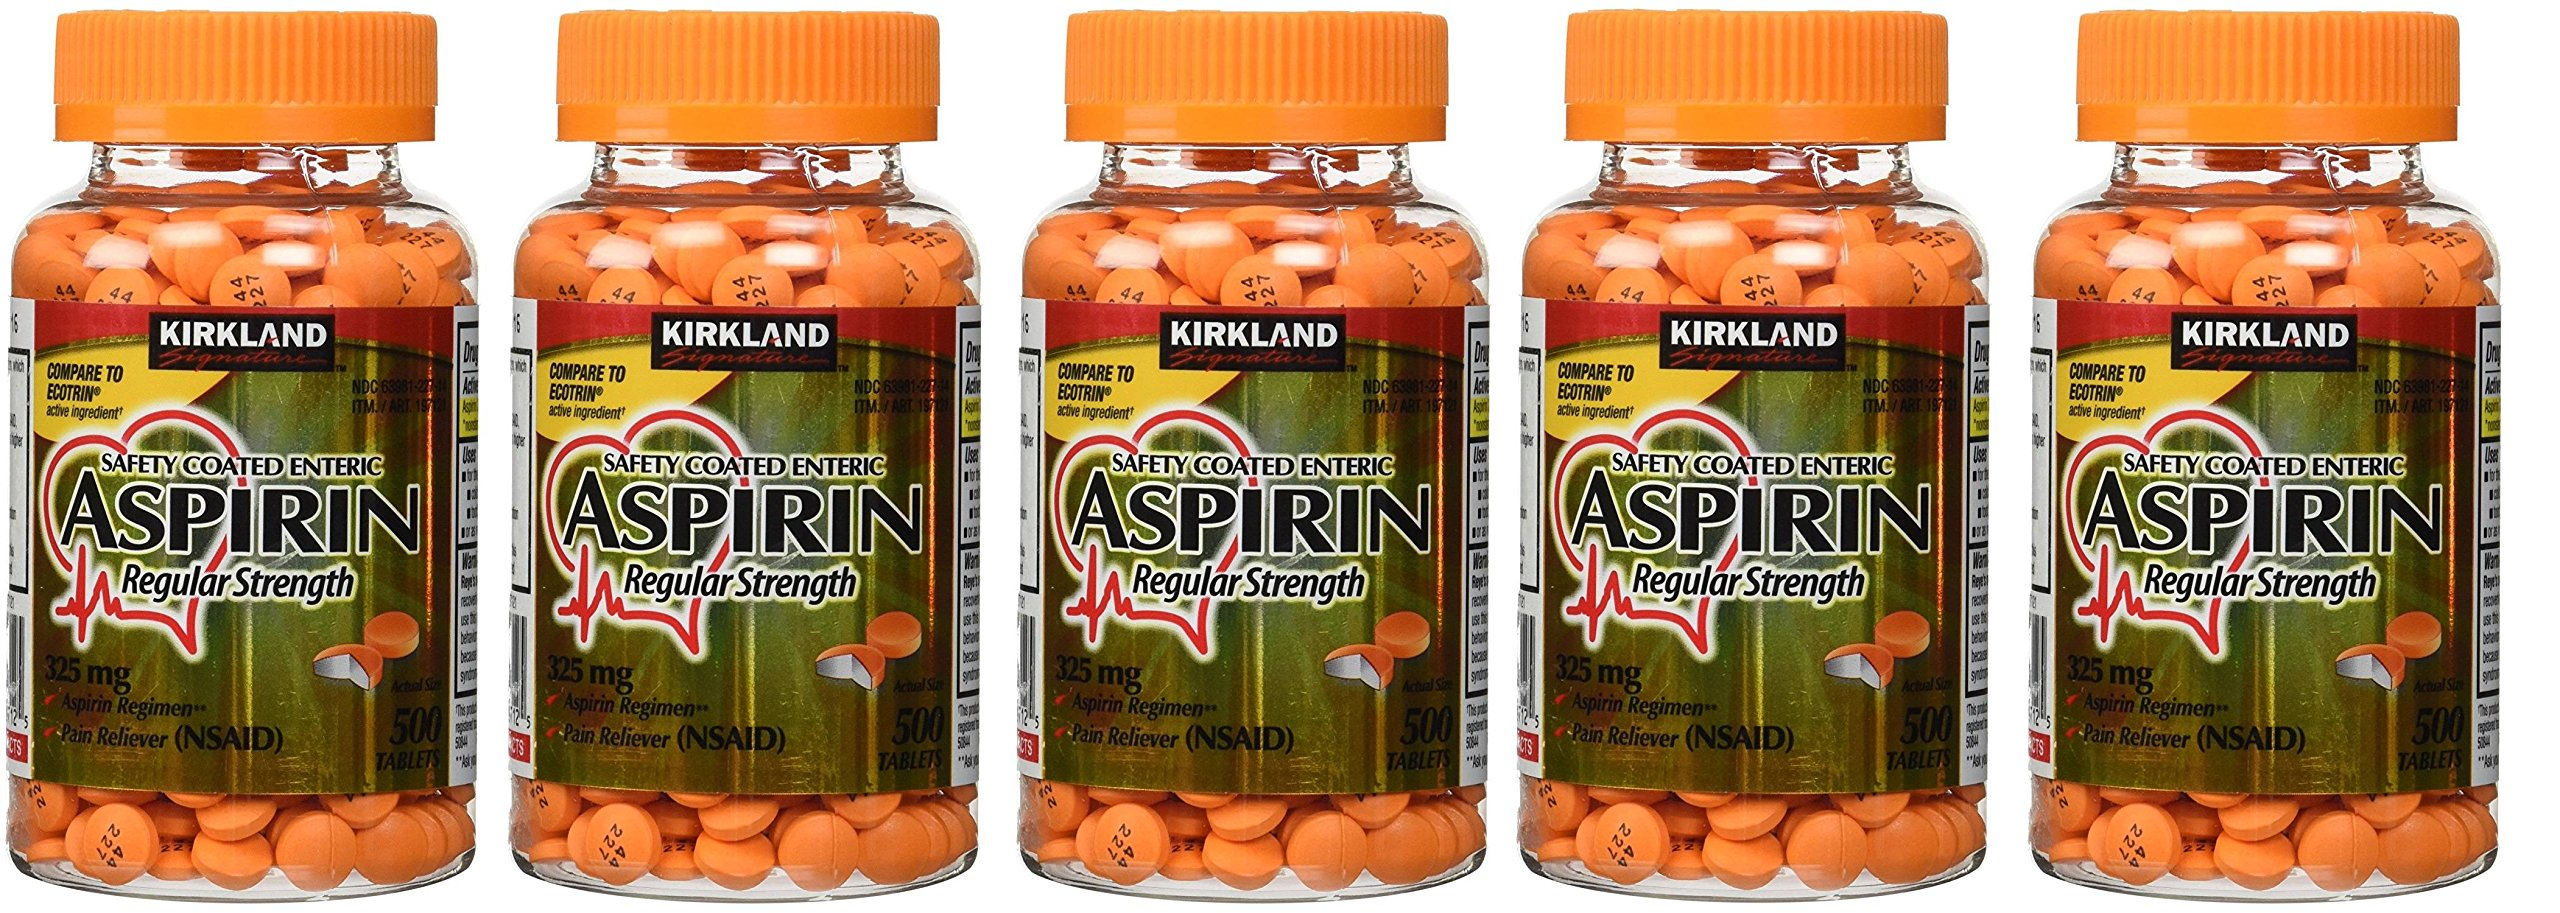 Kirkland Signature kEbSsh Enteric Coated Aspirin 325mg, 500 Tablets (5 Pack) by Kirkland